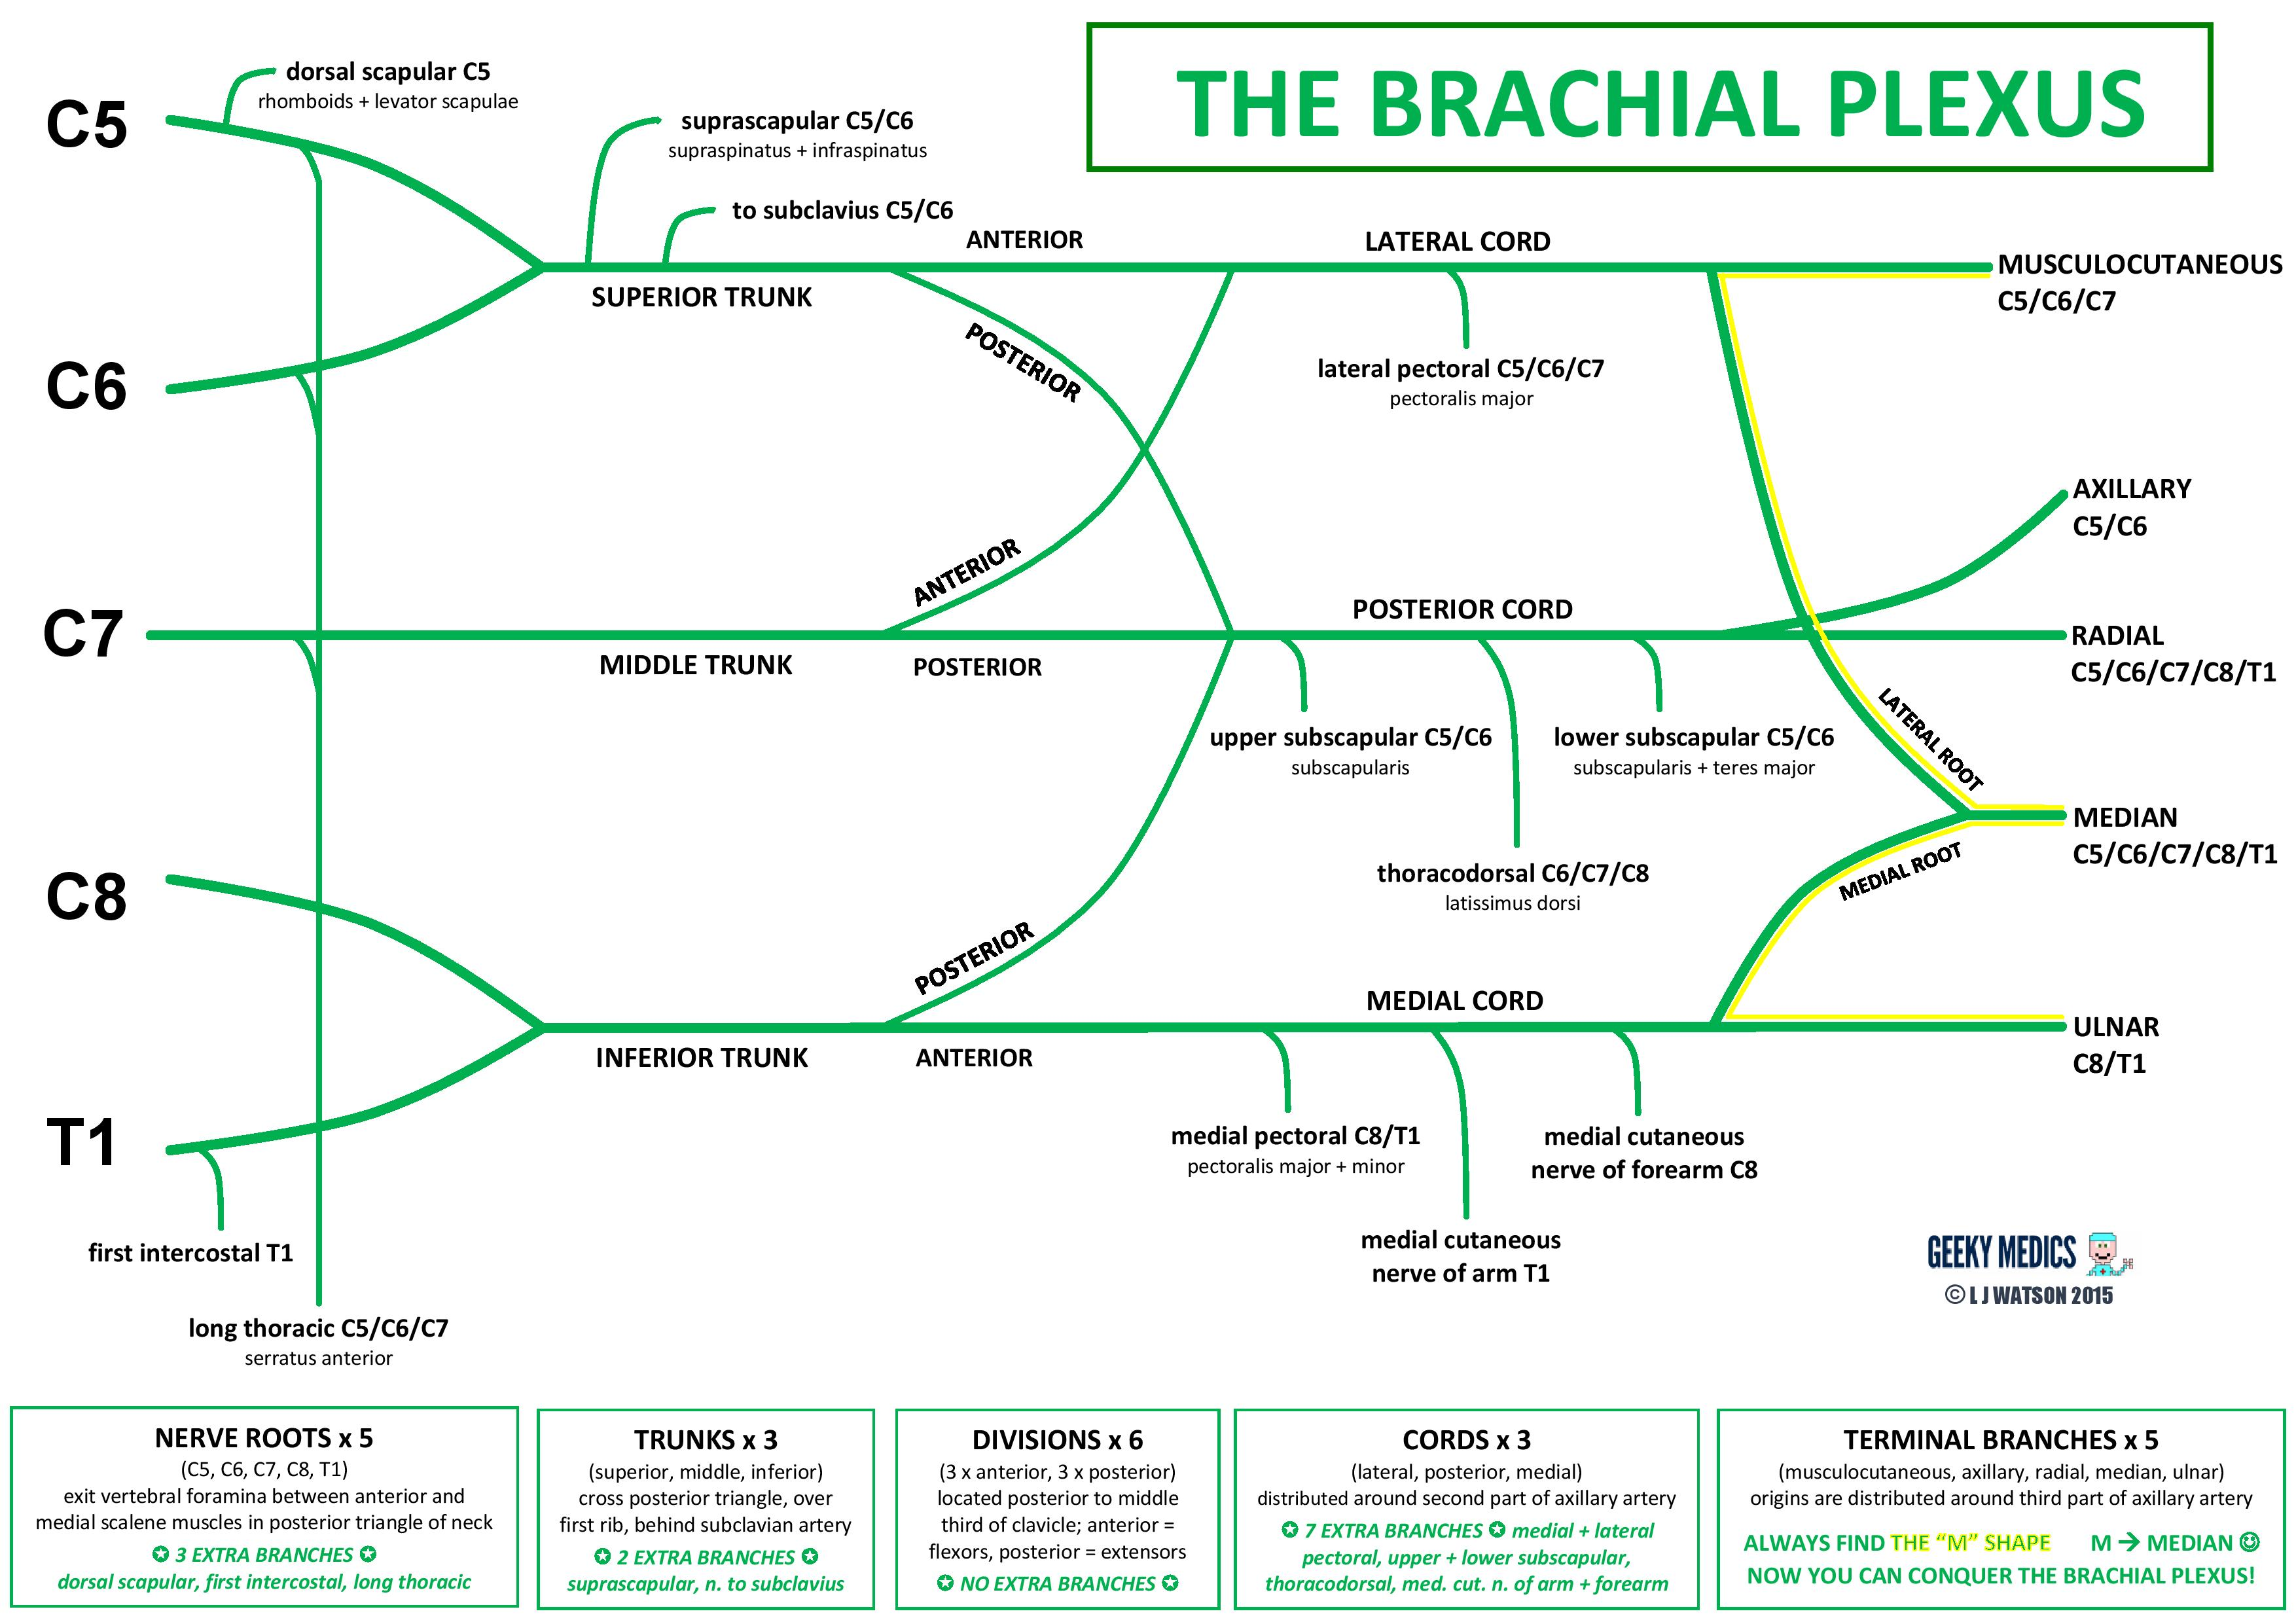 brachial plexus schematic - photo #4